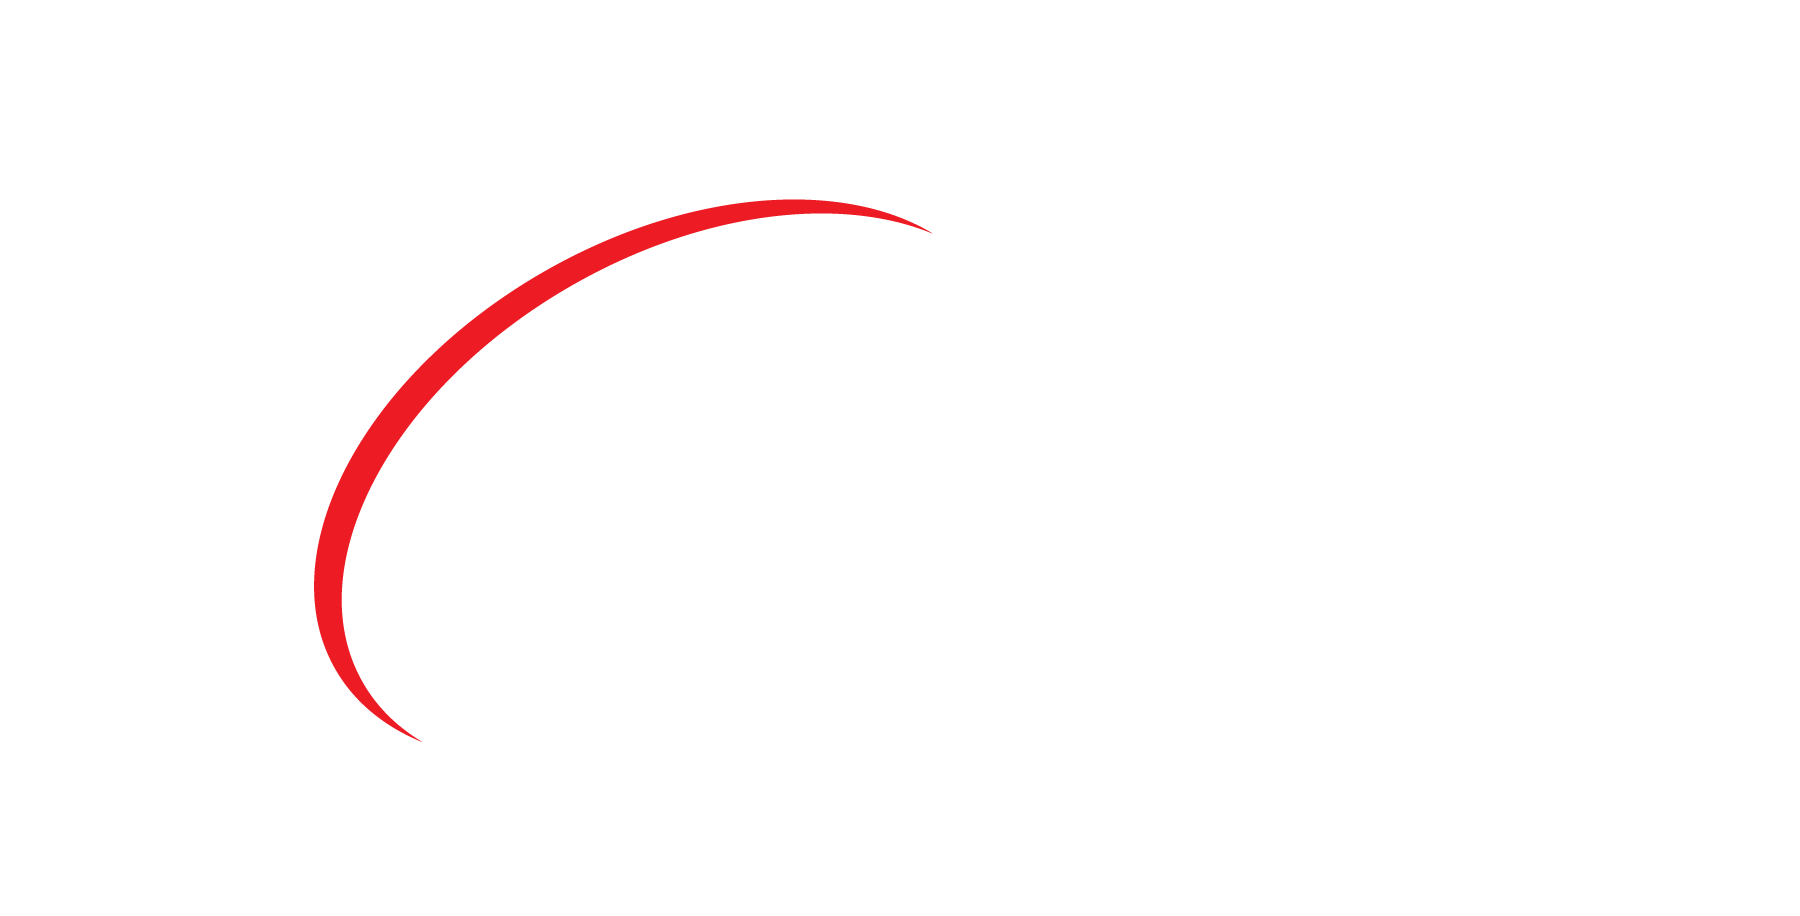 Time World General Trading